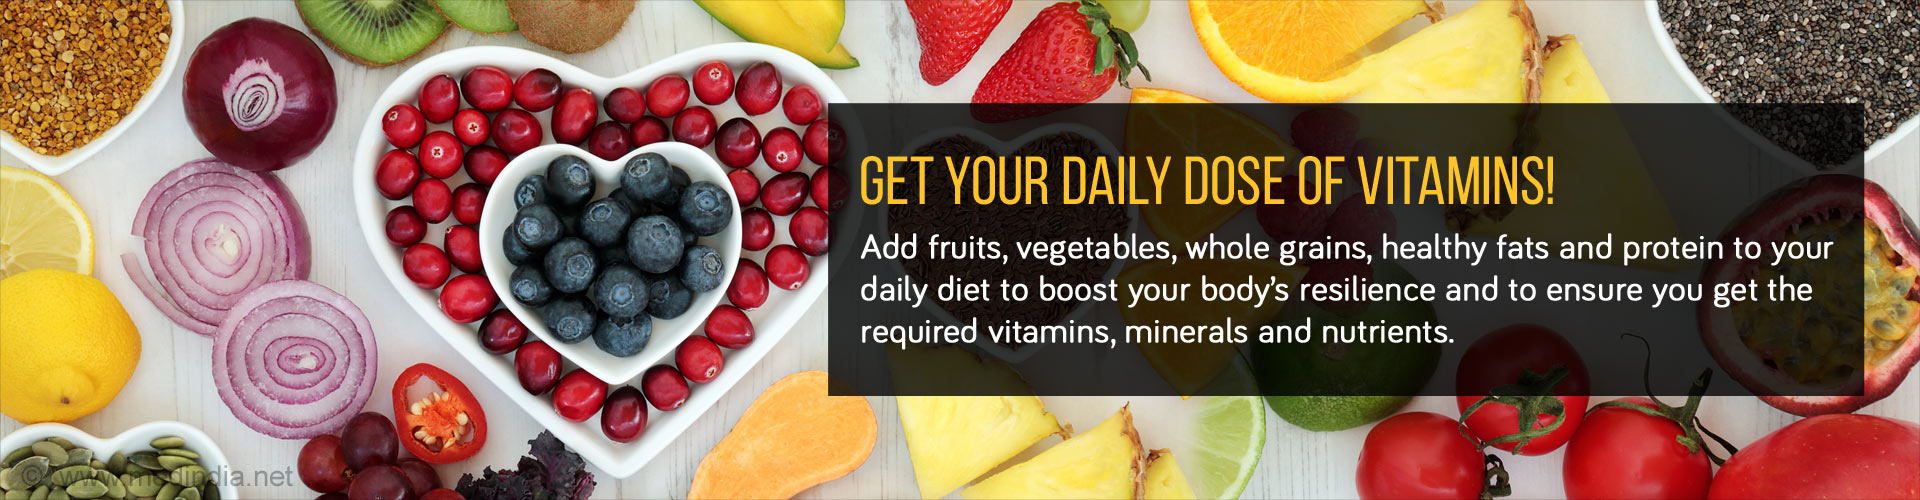 Get Your Daily Dose of Vitamins! Add fruits, vegetables, whole grains, healthy fats and protein to your daily diet to boost your body's resilience and to ensure you get the required vitamins, minerals and nutrients.